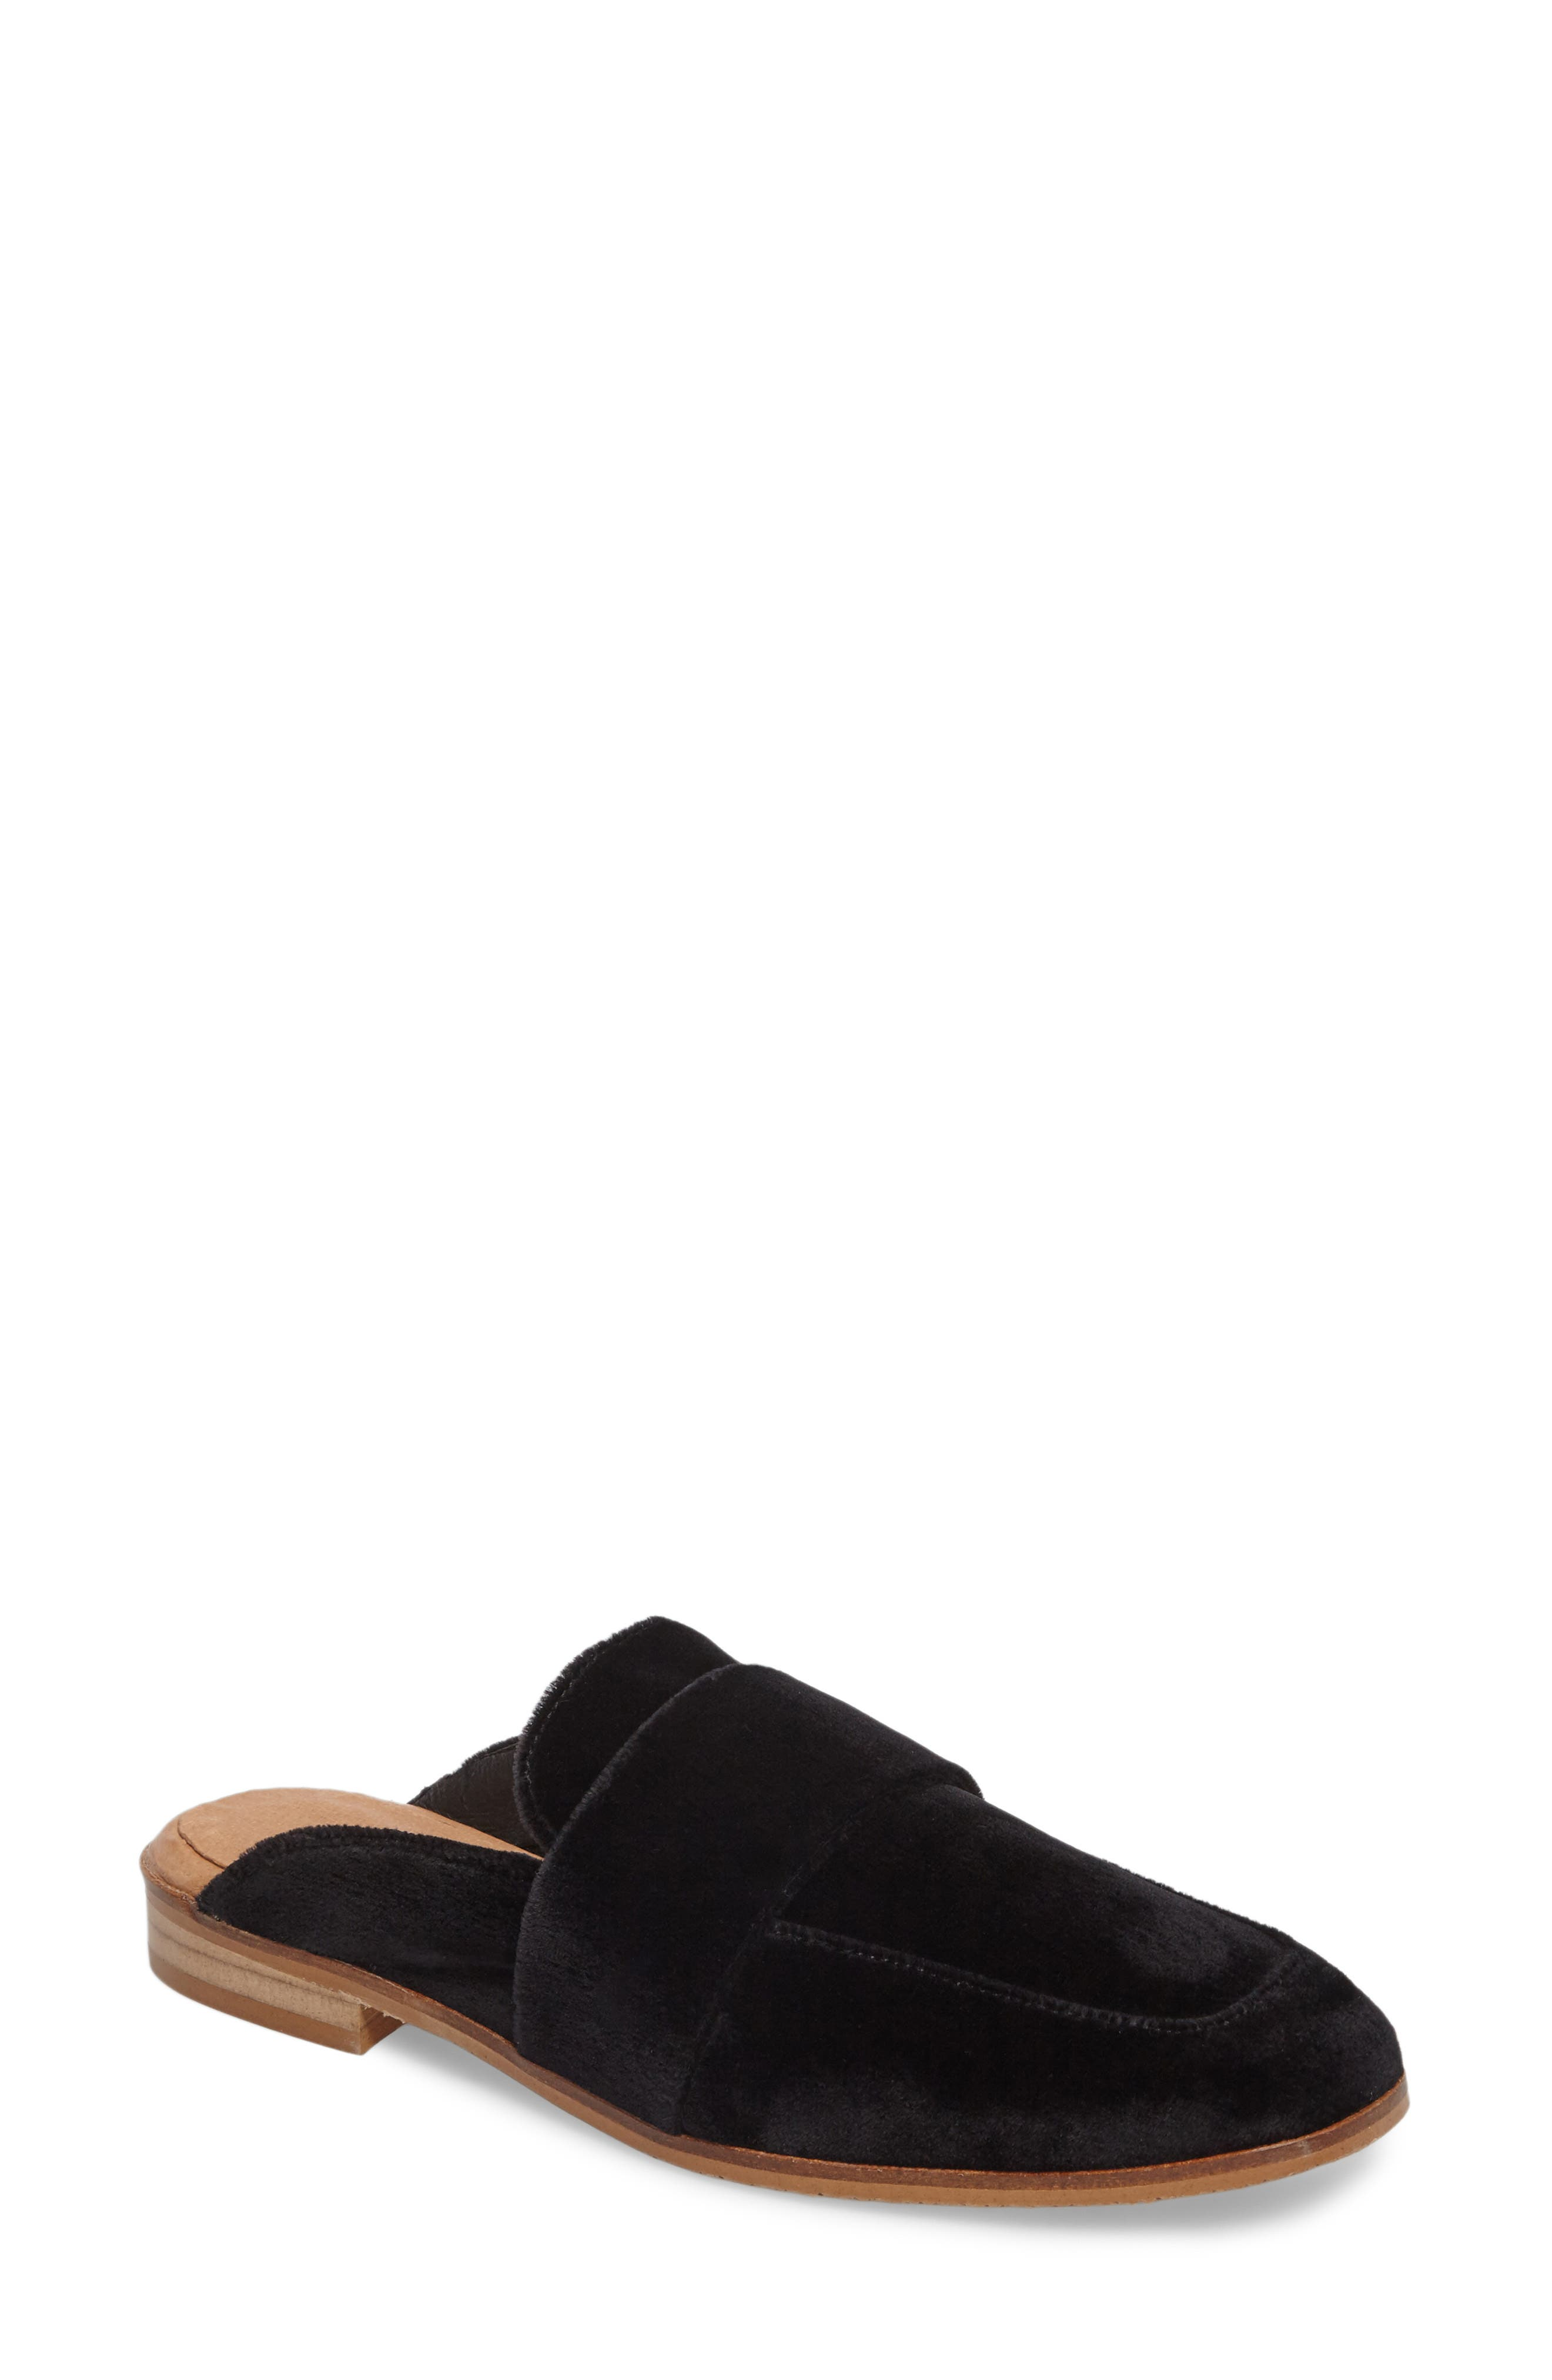 Free People Shoes Nordstrom